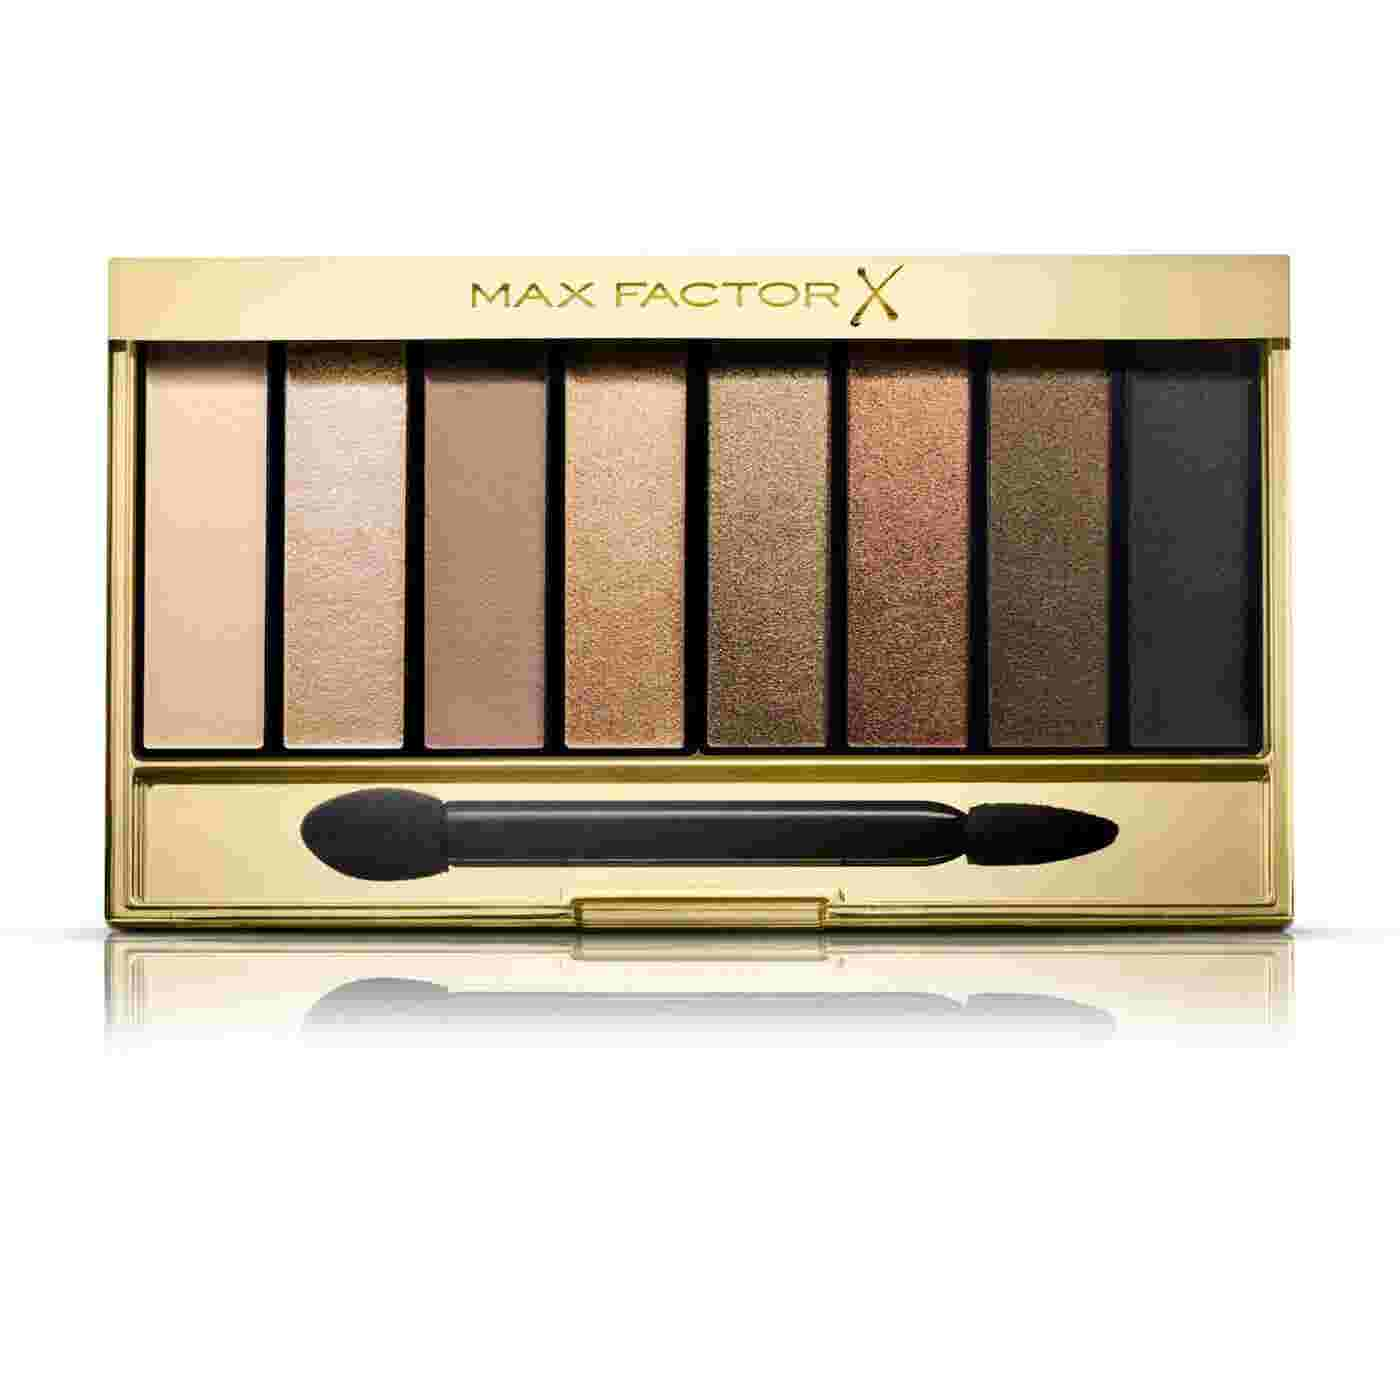 Max Factor Masterpiece Nude Eyeshadow Palette in Golden Nudes